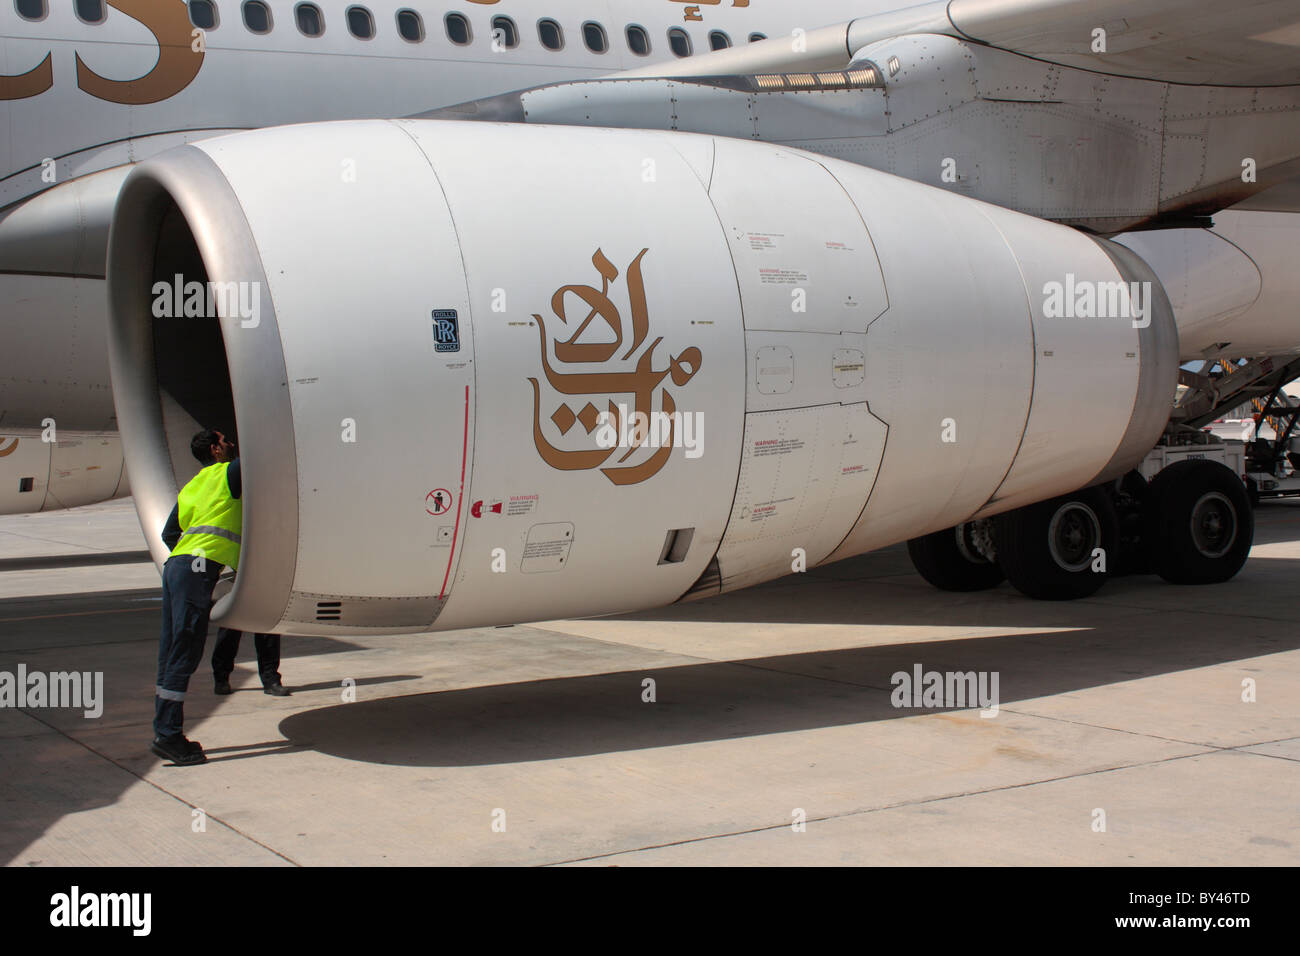 Airport employee inspecting a Rolls-Royce Trent 700 jet engine on an Emirates Airbus A330-200 - Stock Image